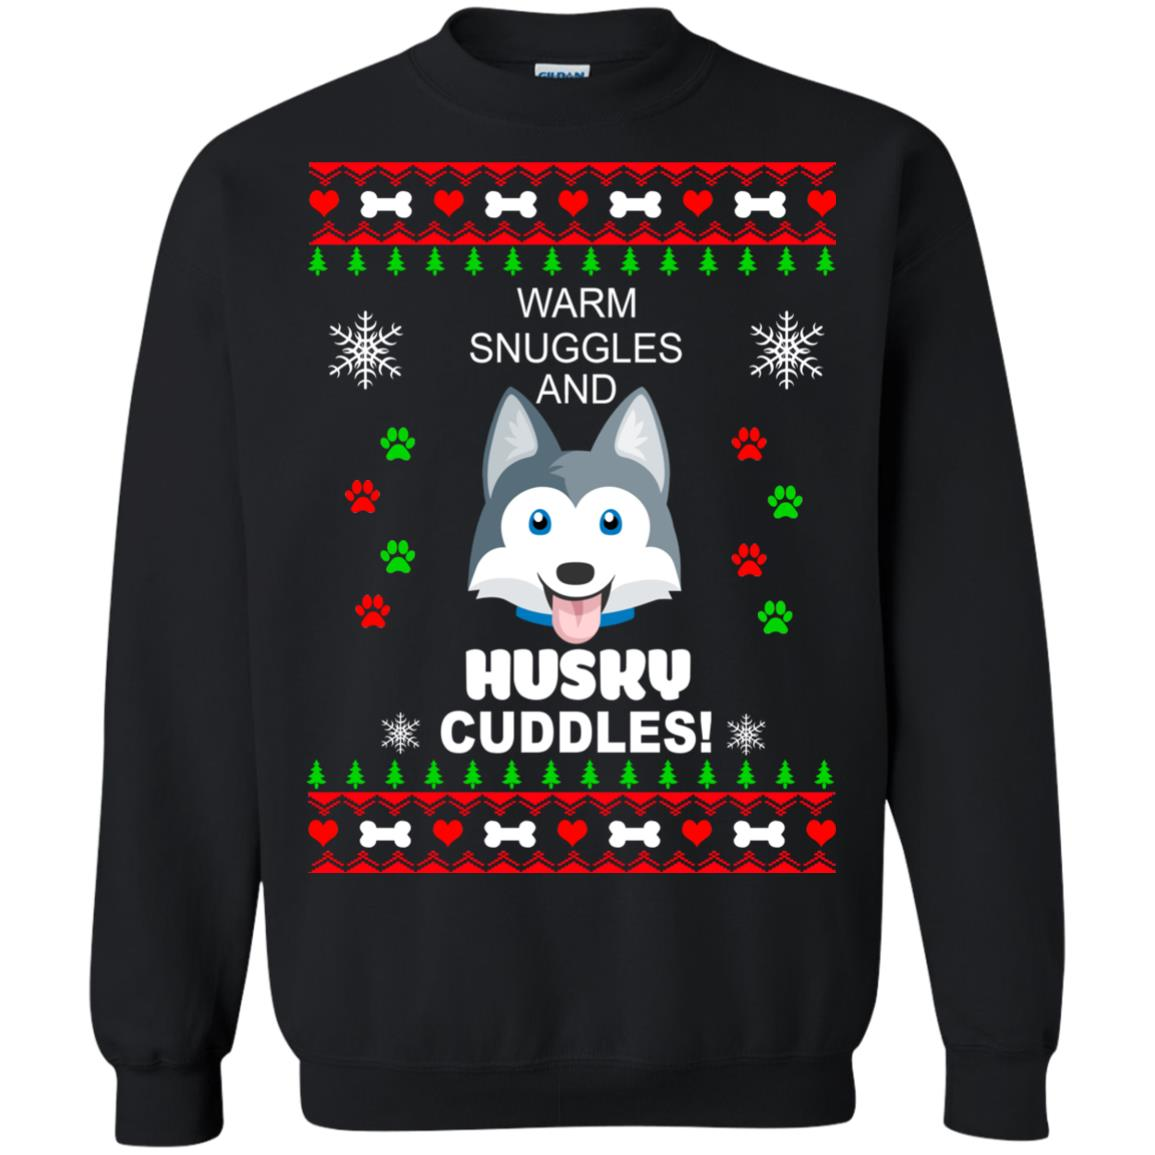 image 1945 - Warm snuggles and Husky cuddles Christmas sweater